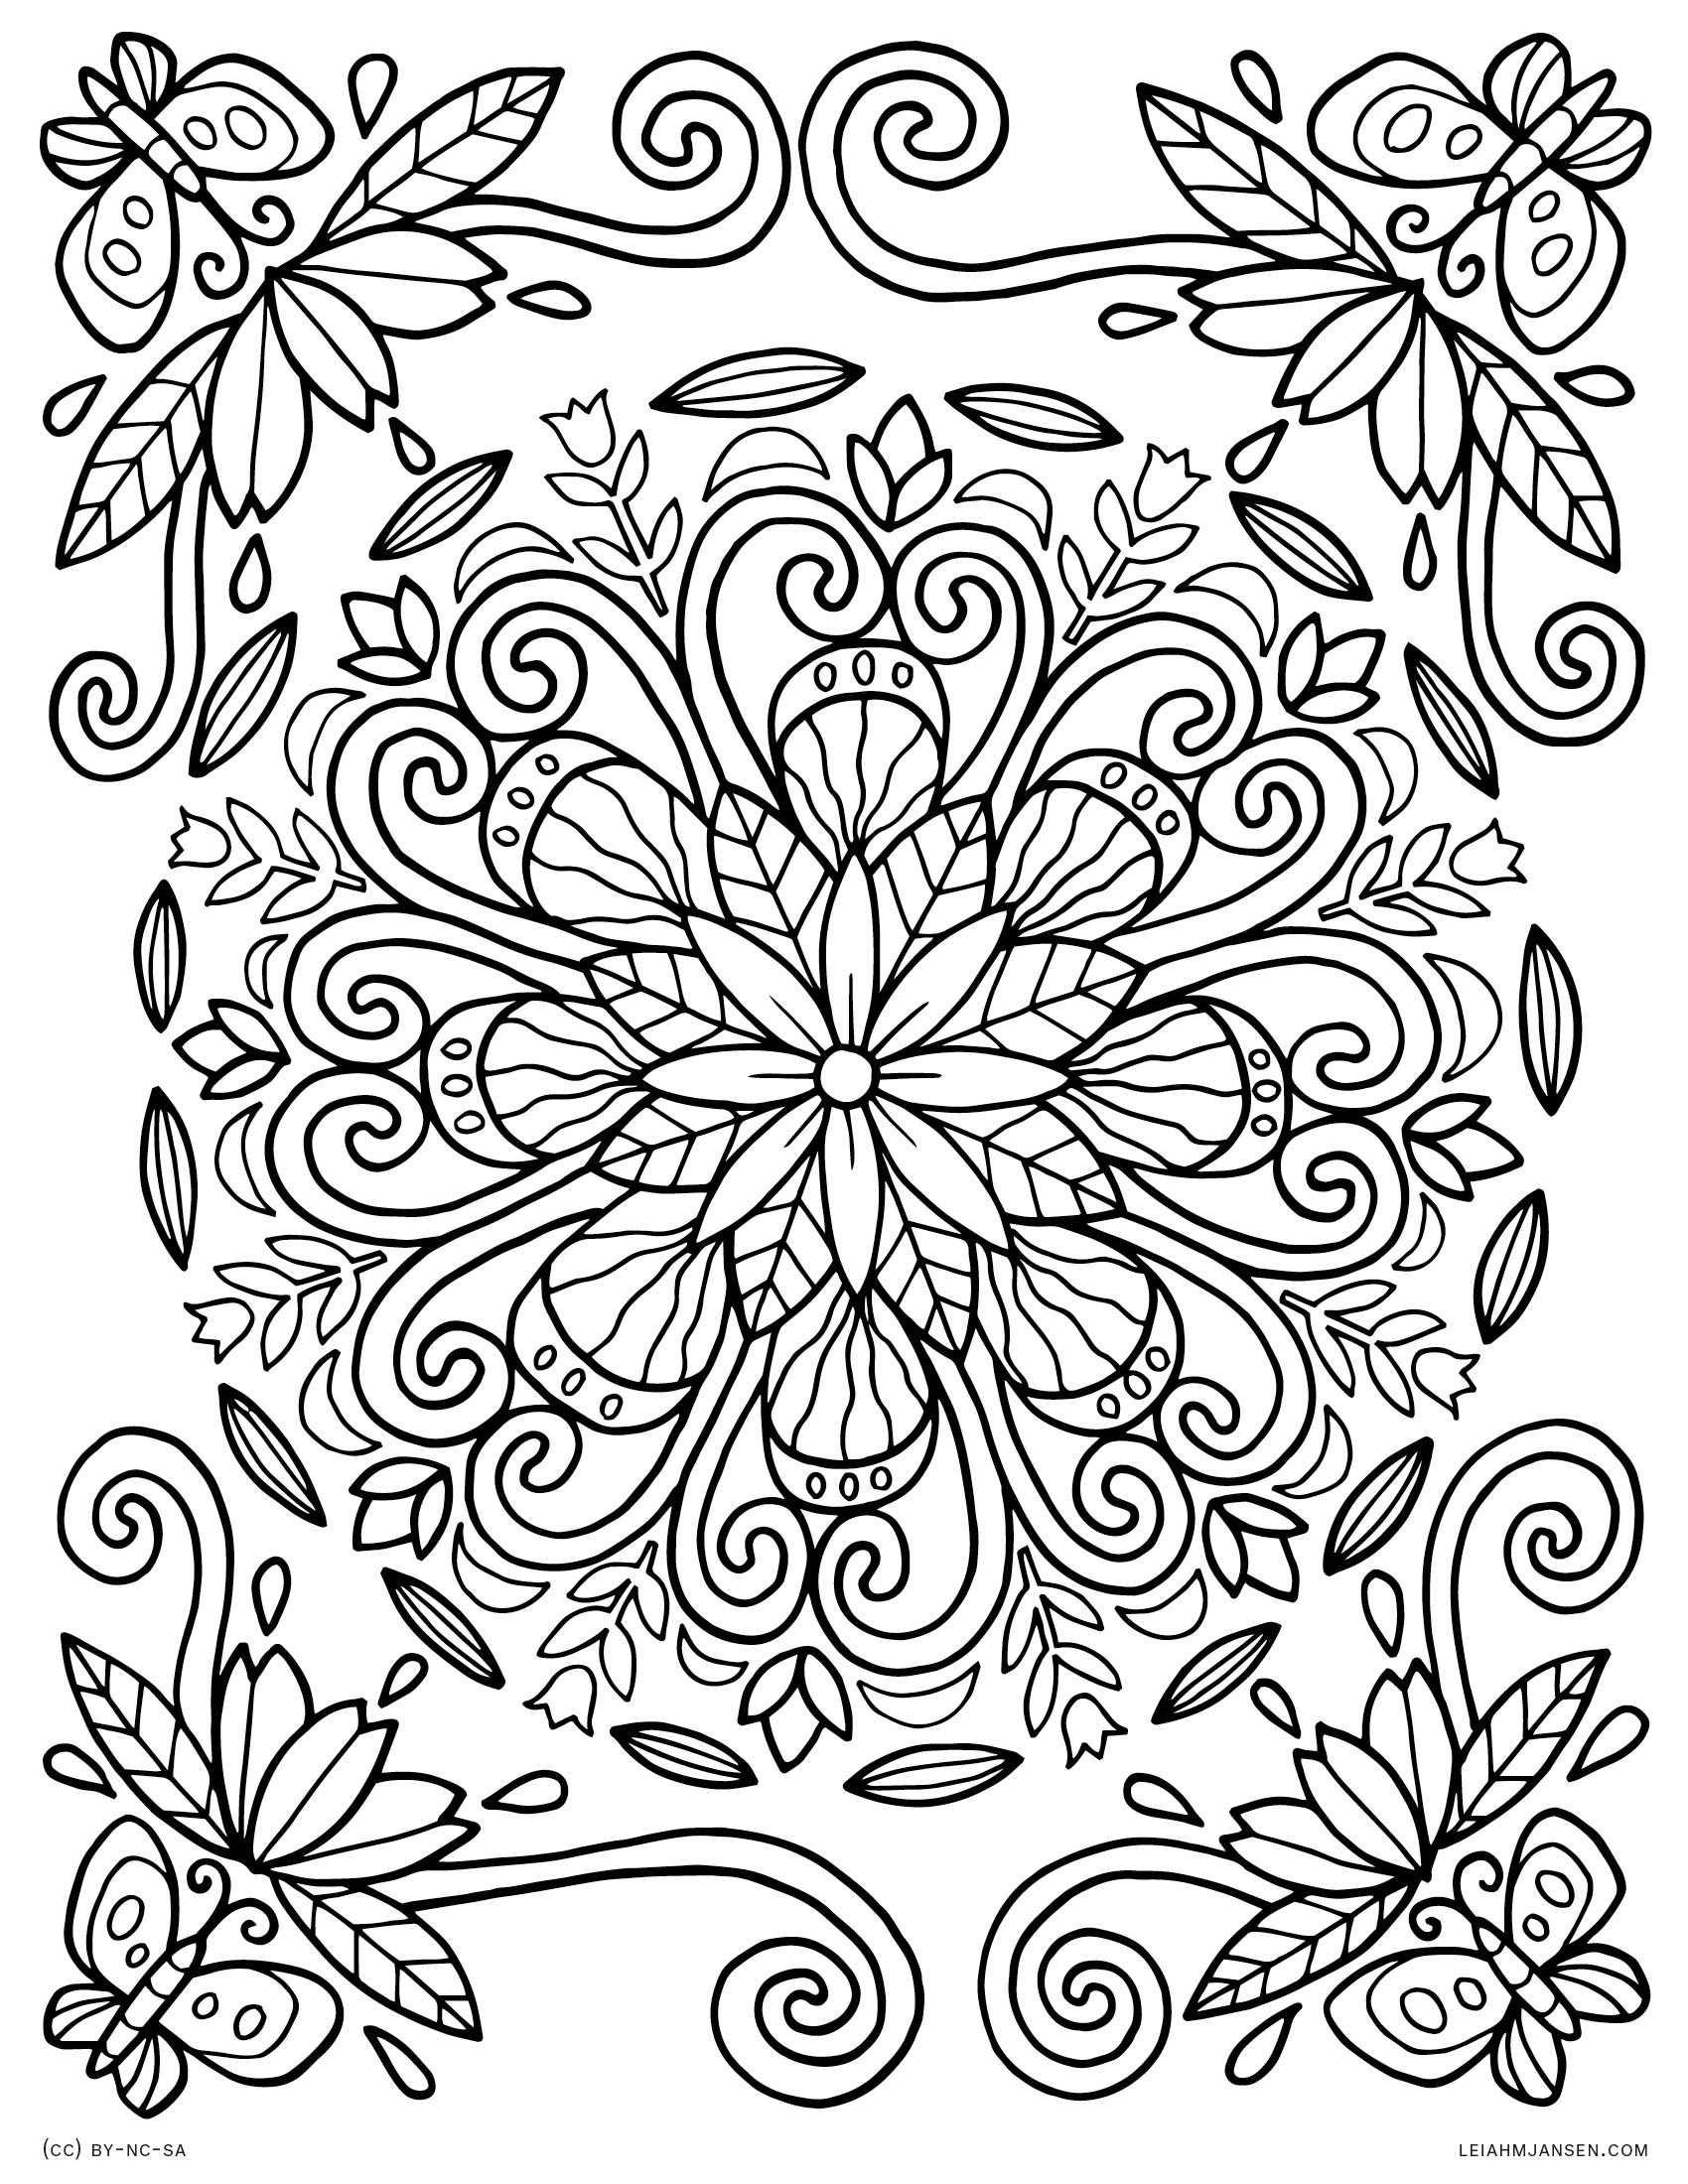 Coloring Pages - Free Printable Nature Coloring Pages For Adults